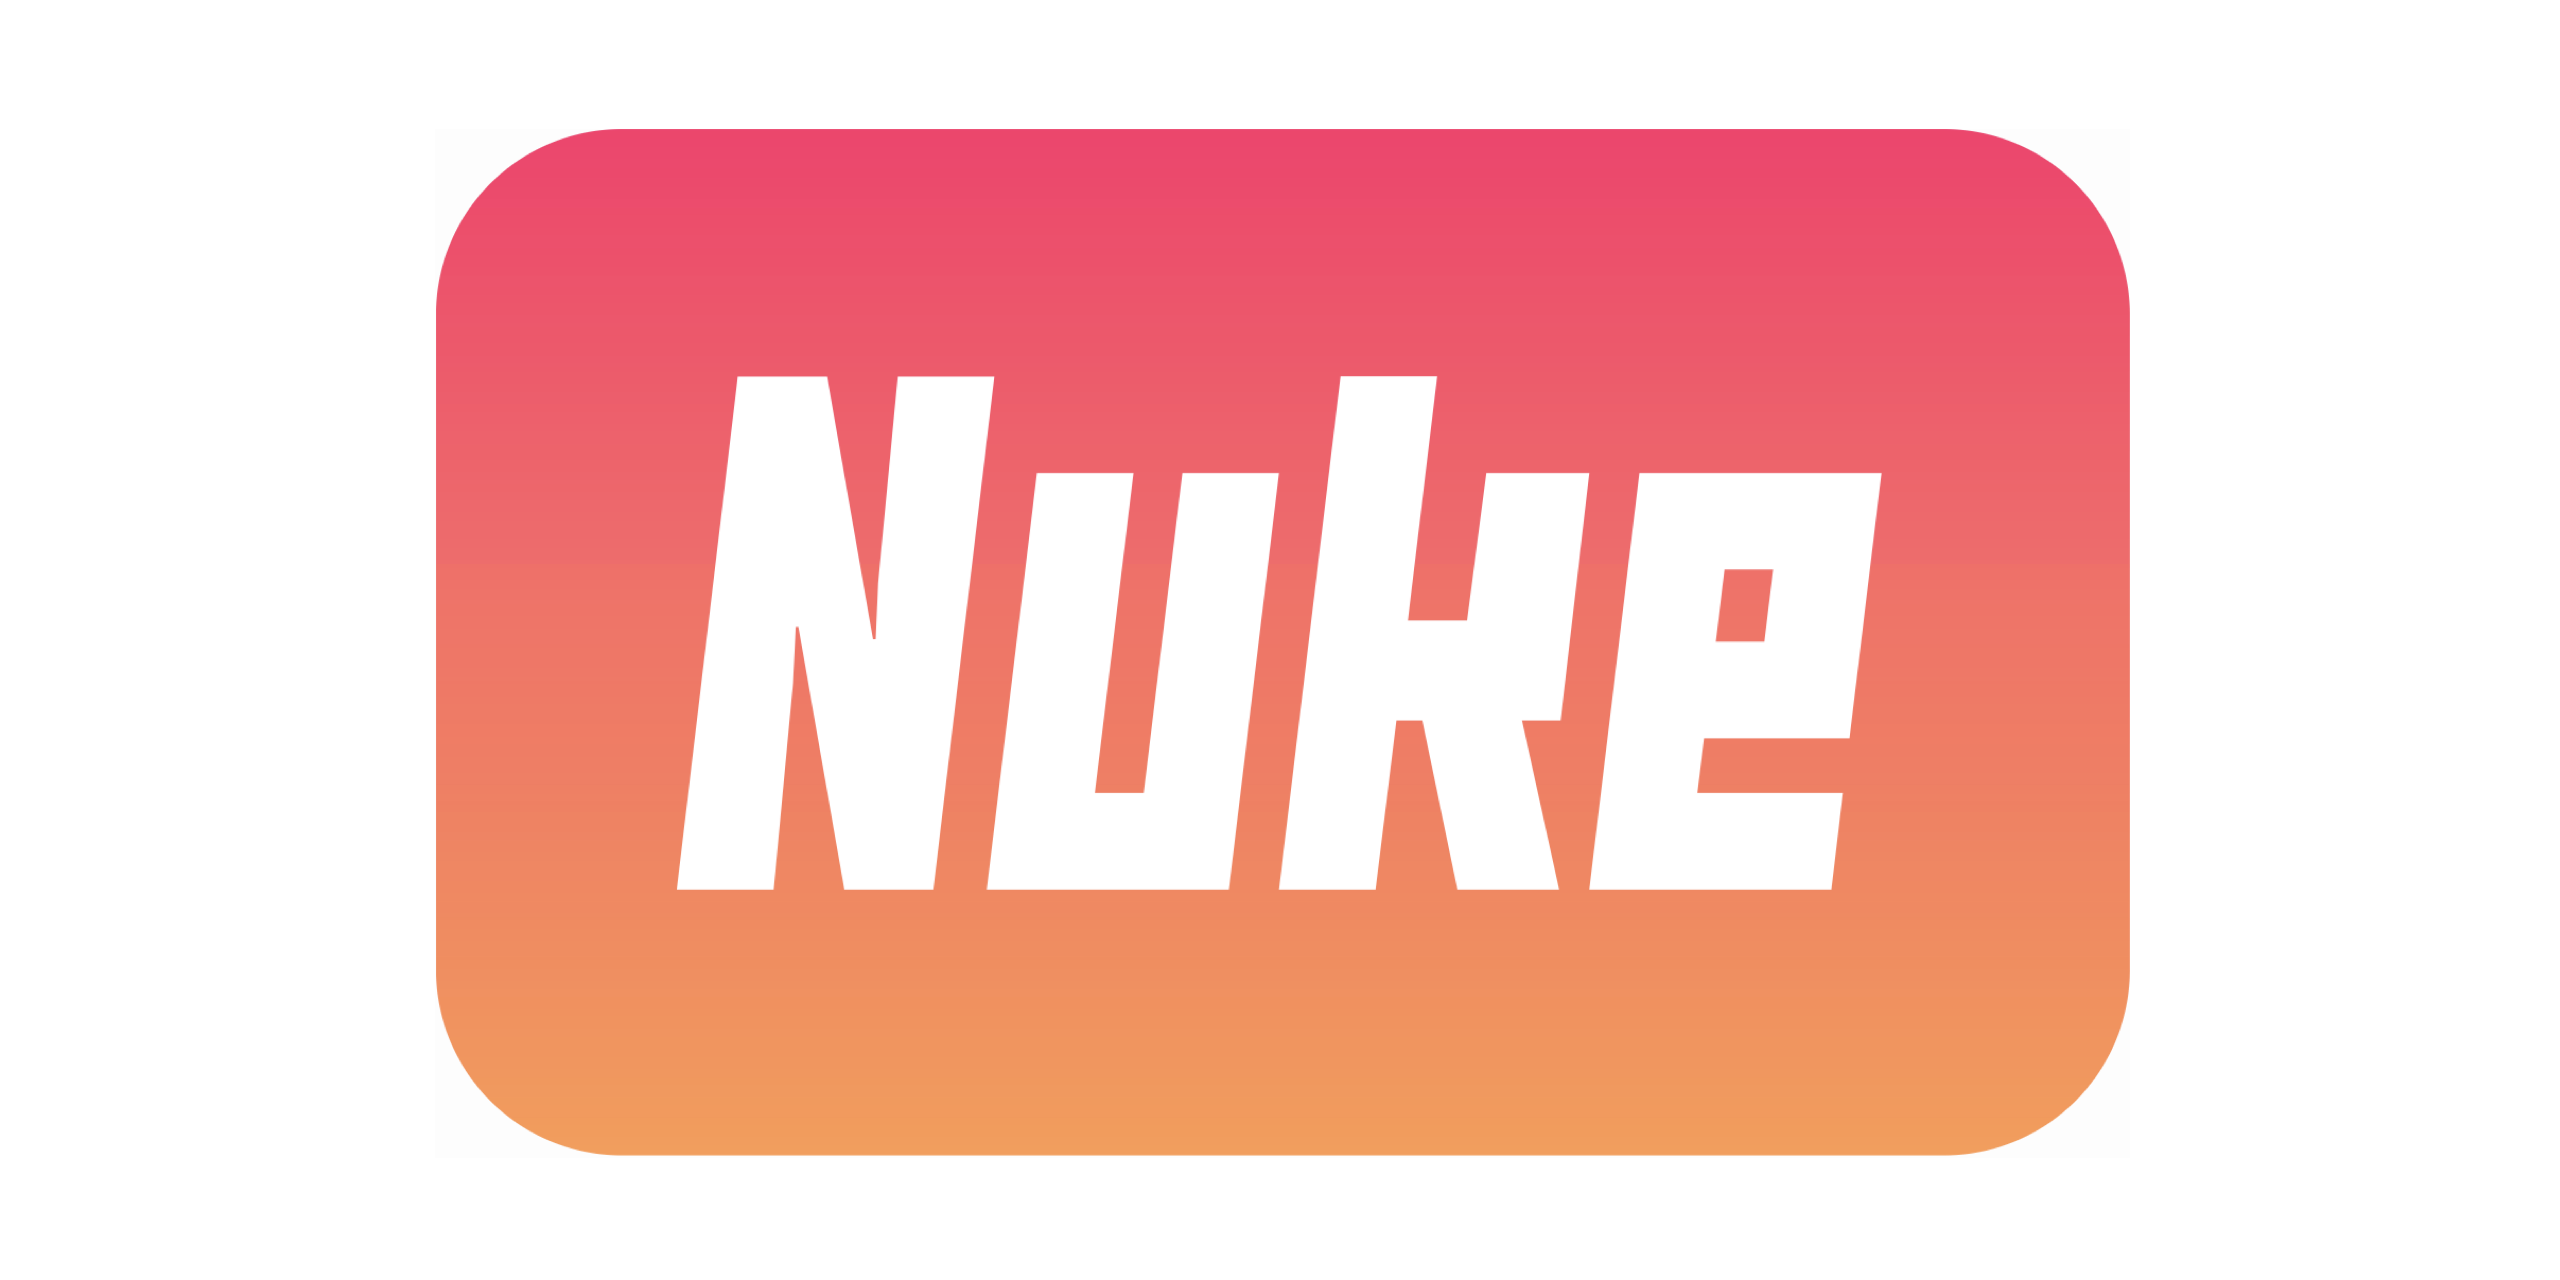 GitHub - kean/Nuke: Powerful image loading and caching system